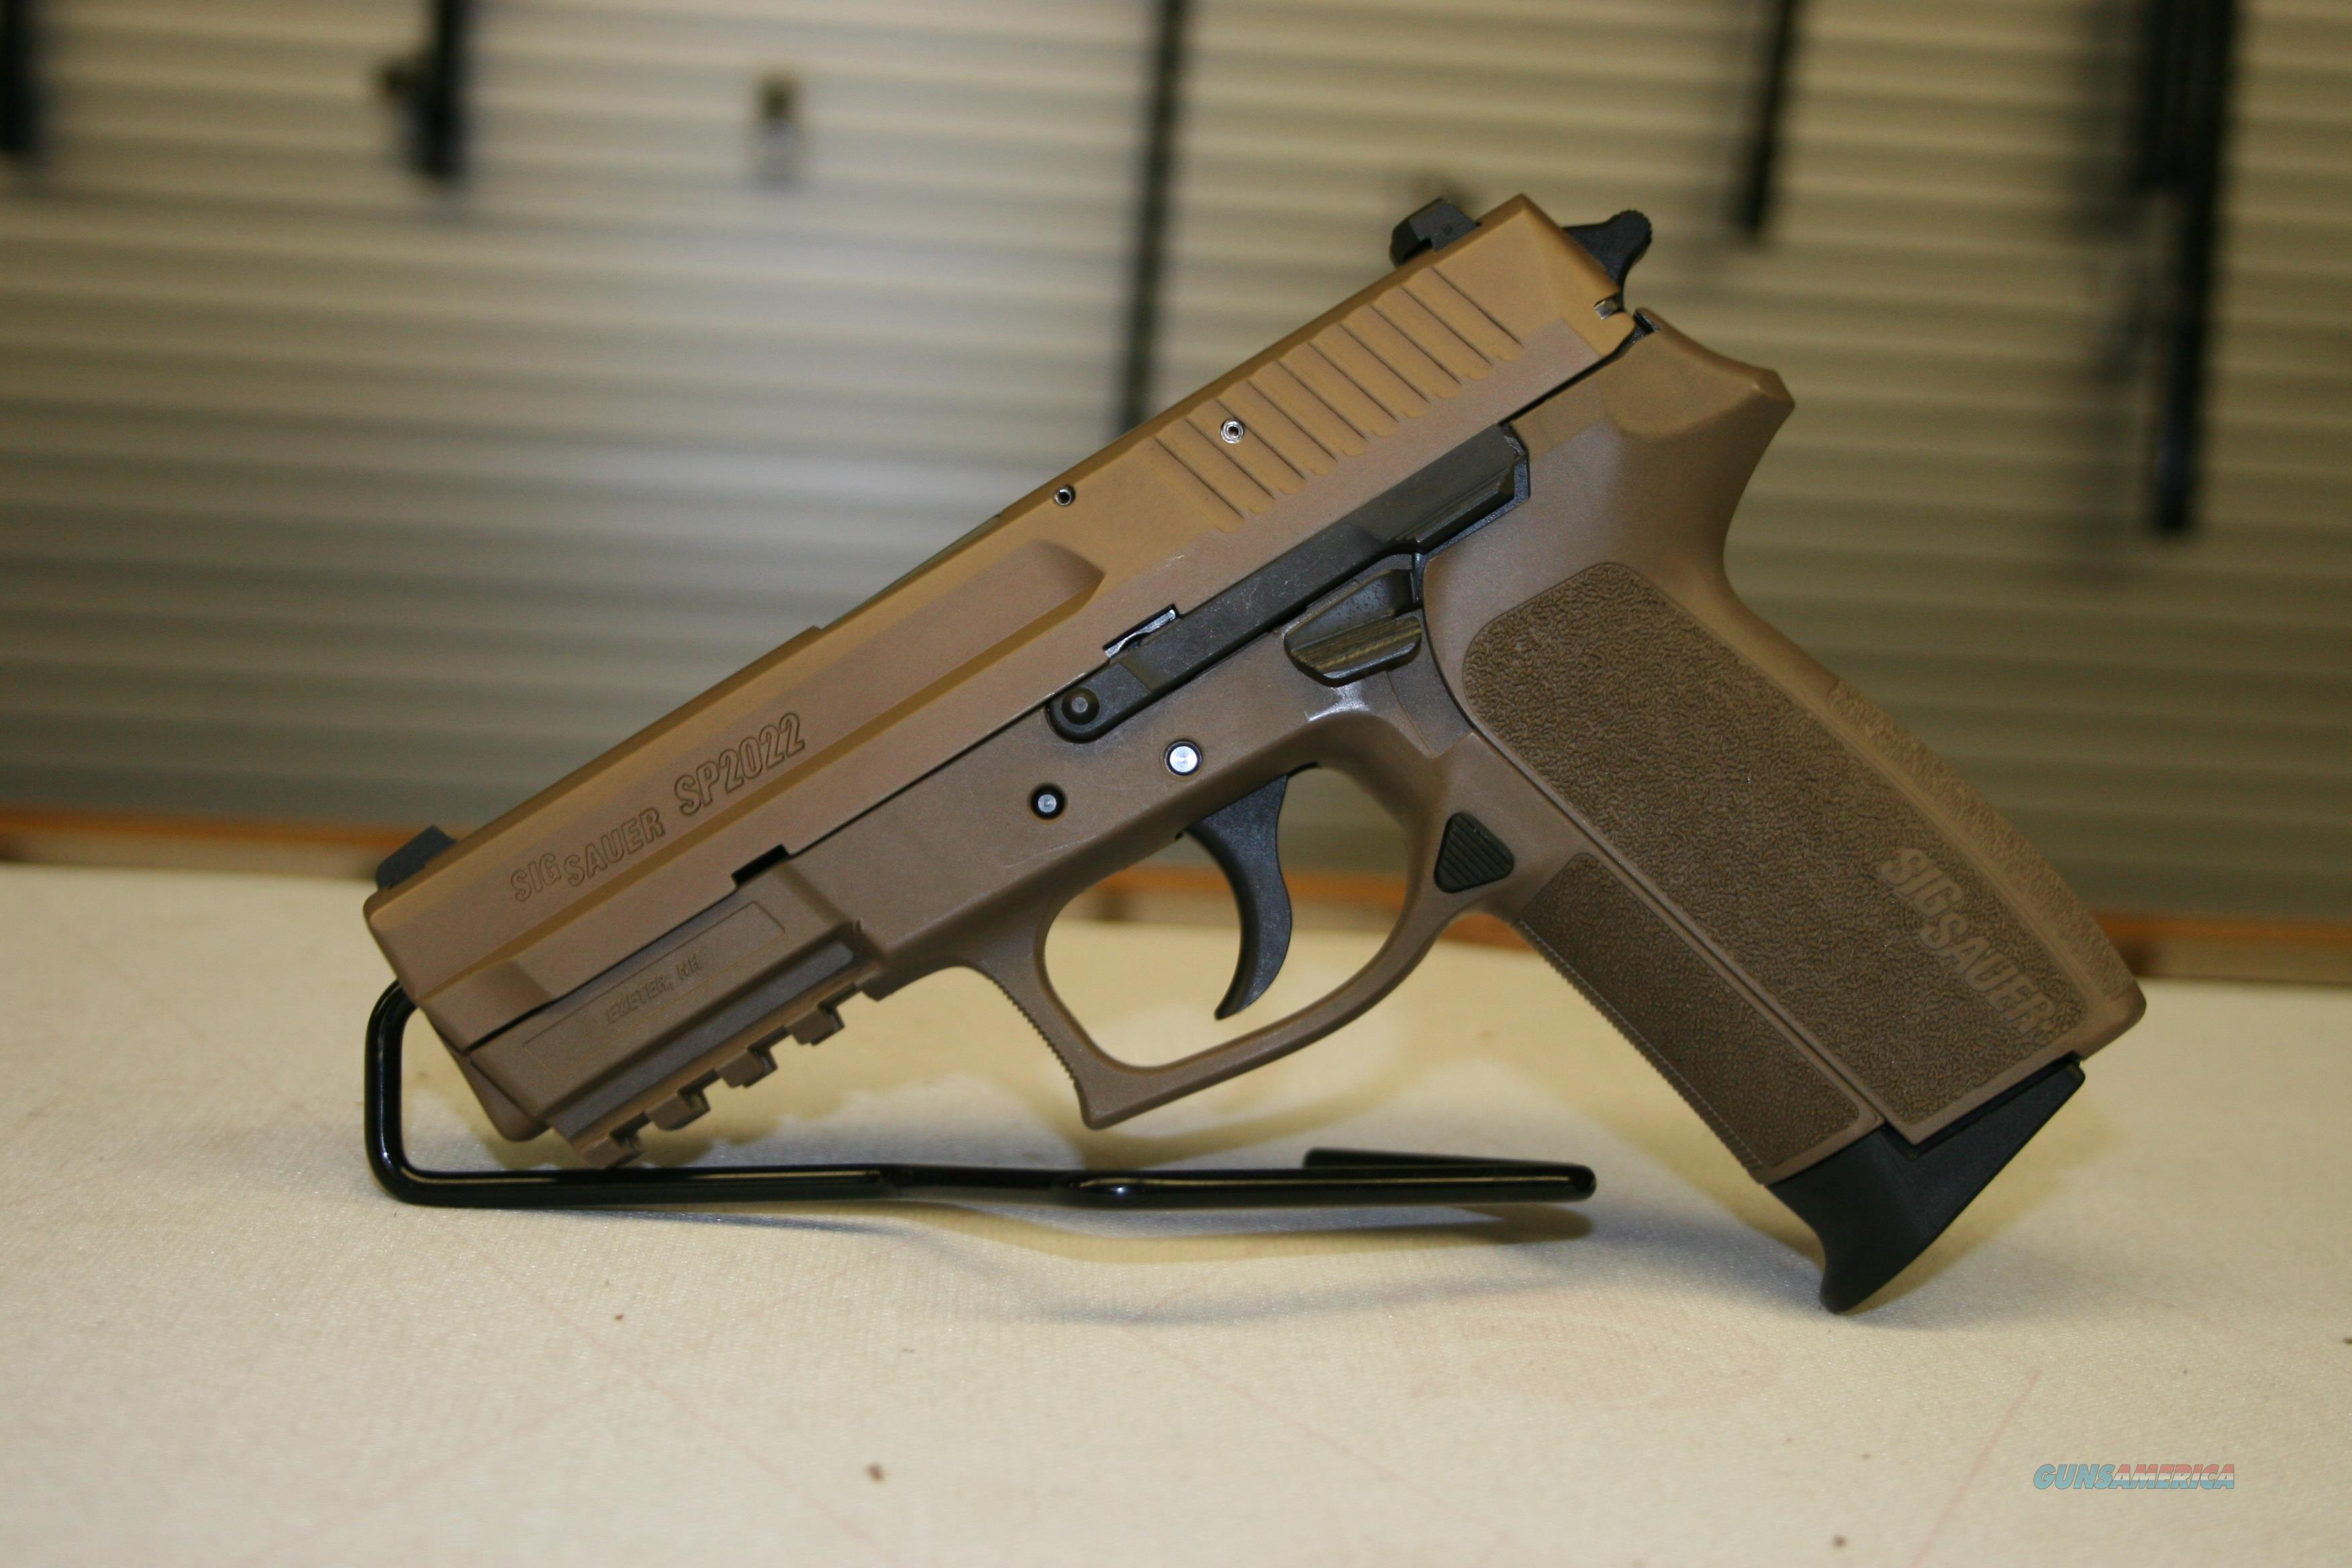 "SIG Sauer SP2022 Semi Automatic Pistol 9mm Luger 3.9"" Barrel 15 Rounds Polymer Frame Nitron Flat Dark Earth Finish  Guns > Pistols > Sig - Sauer/Sigarms Pistols > 2022"